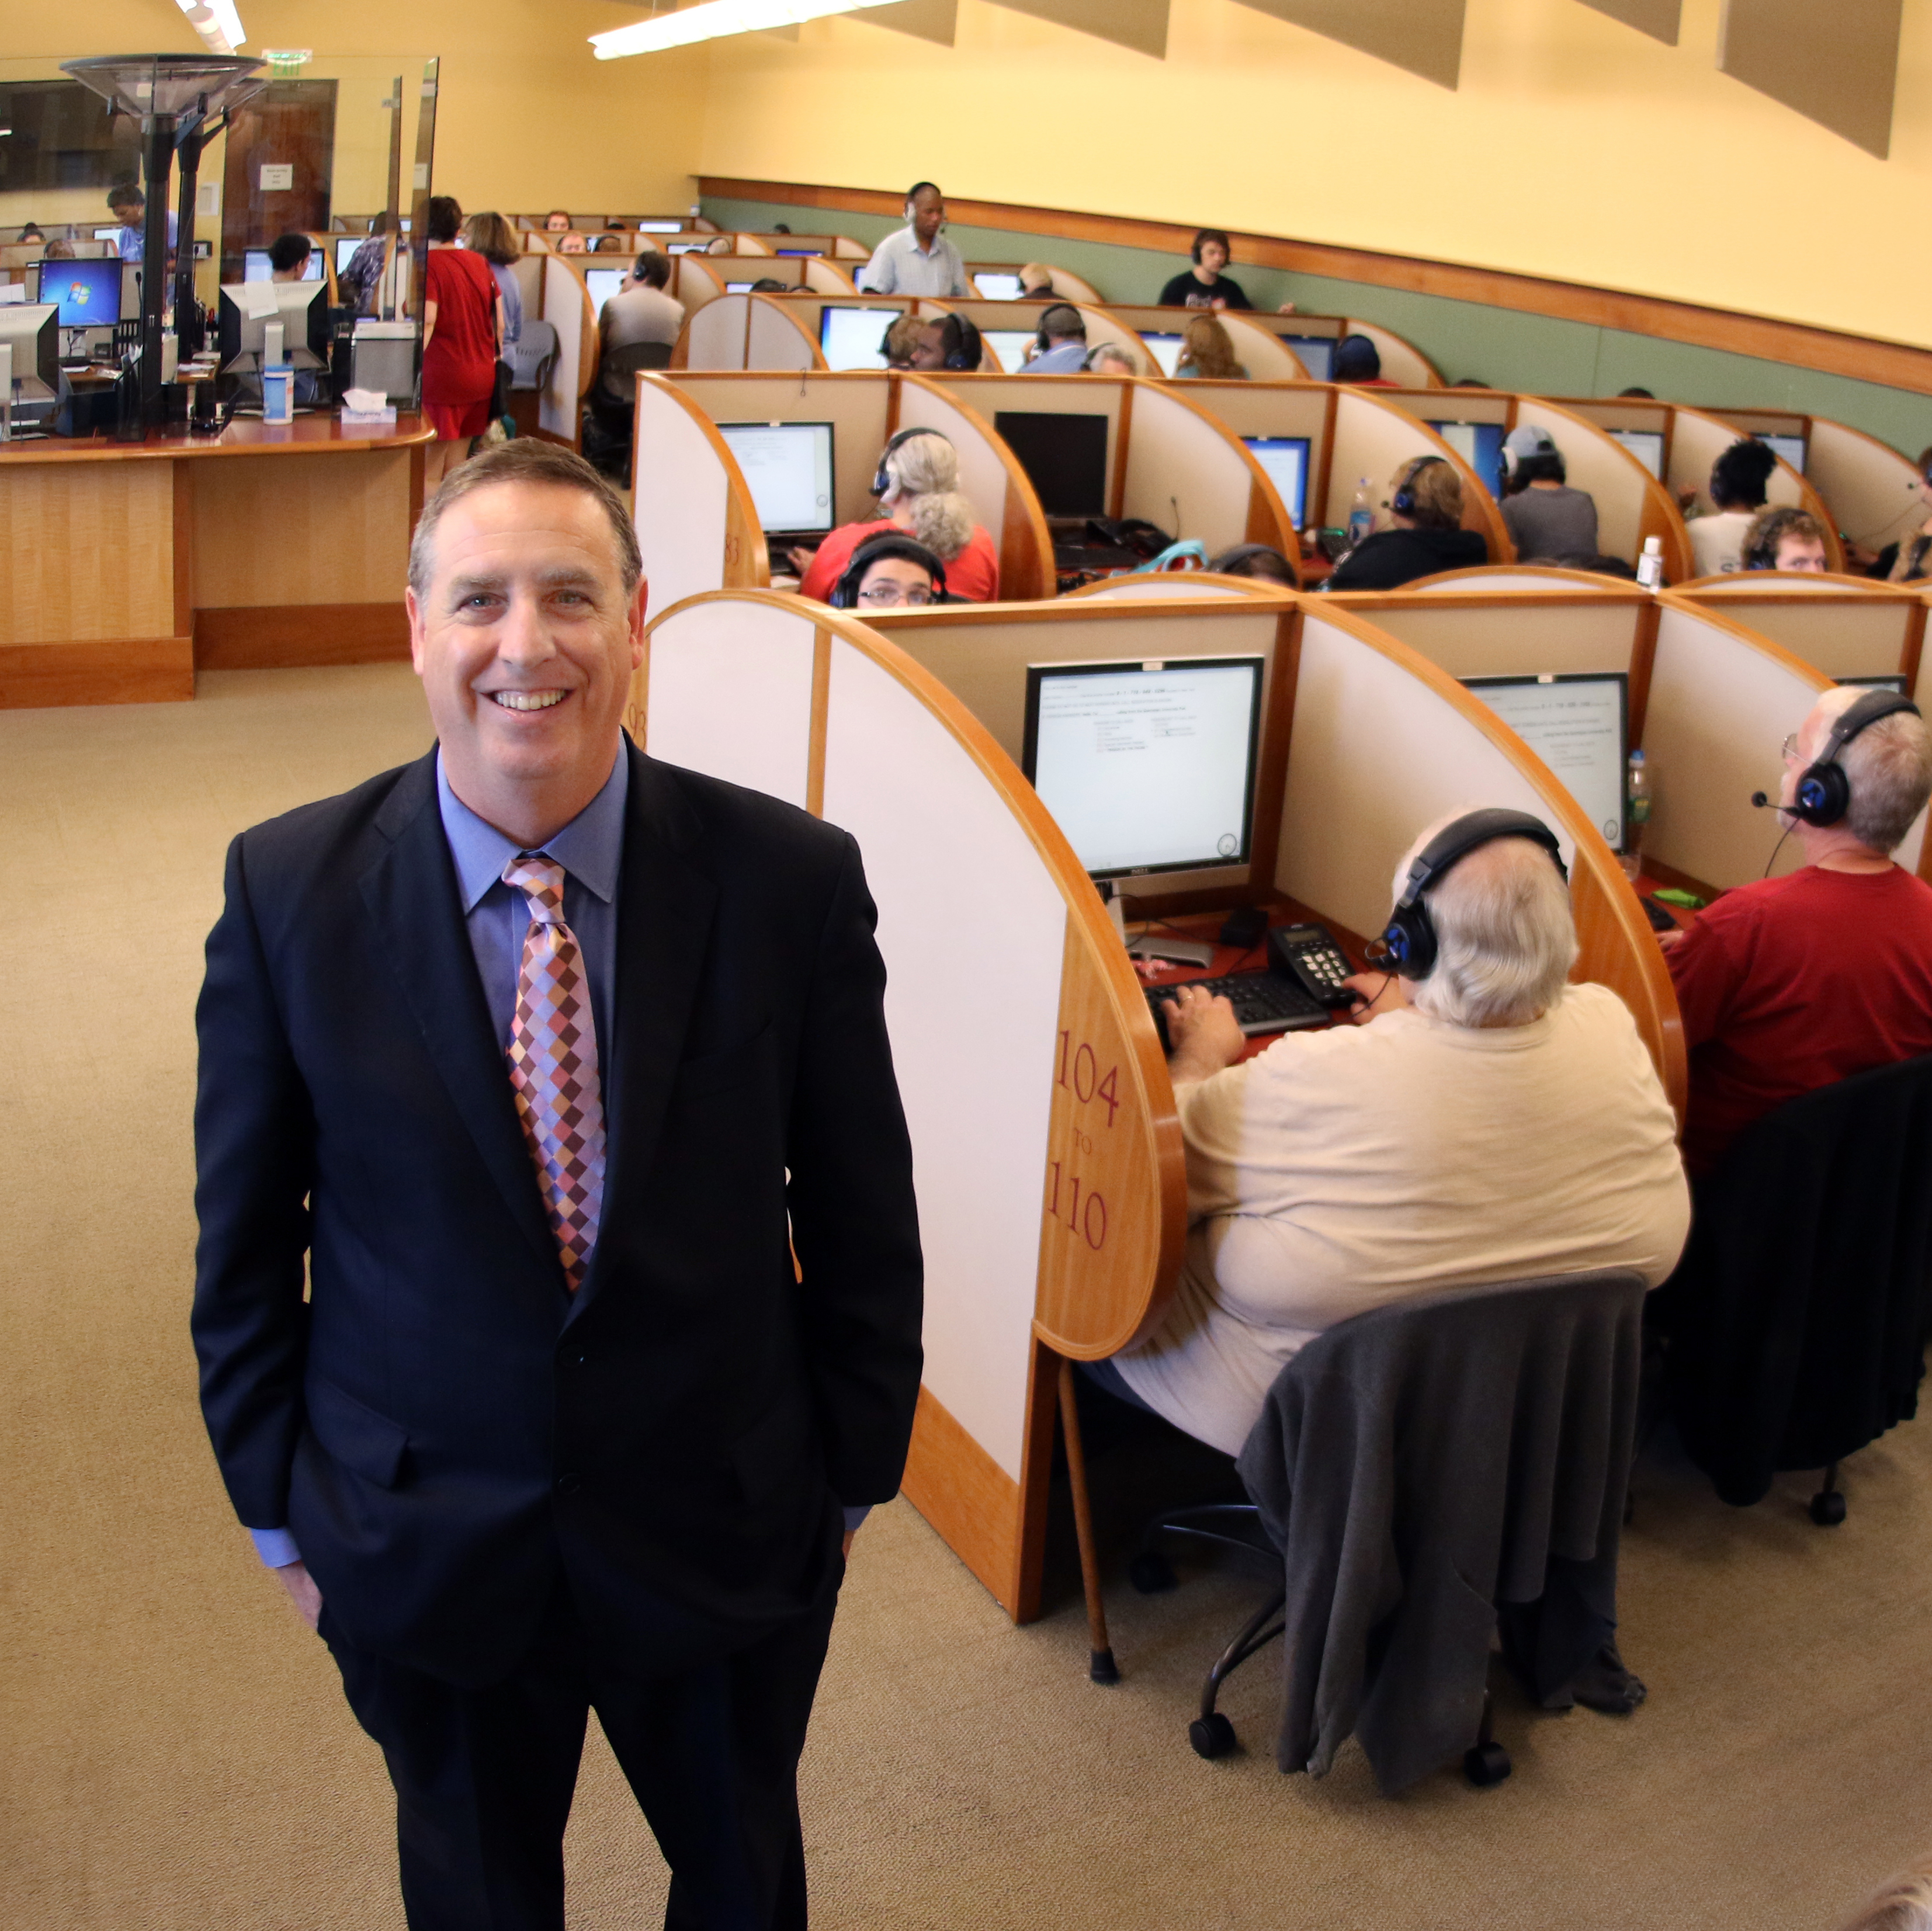 Doug Schwartz has been director of the Quinnipiac University Polling Institute since 1991, growing it from a regional outfit to a nationally recognized name in political polling.